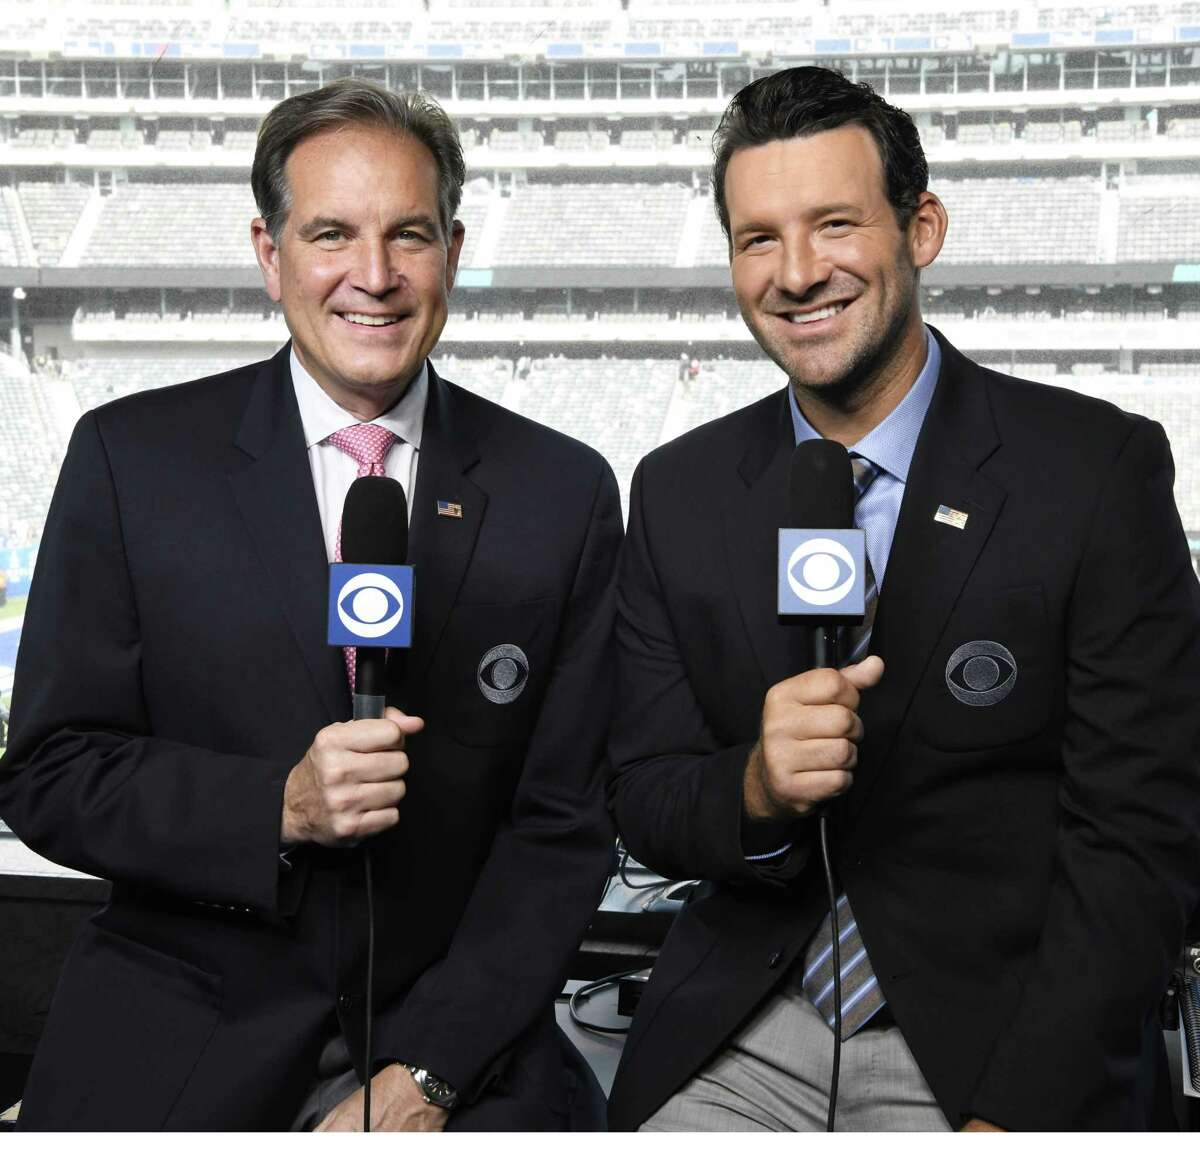 NFL on CBS Left: Jim Nantz Lead NFL play-by-play Announcer, Tony Romo Lead Analyst and Tracy Wolfson Lead Reporter. Photo Cr.: John Paul Filo/CBS CBS Aƒ?A'c.2018 CBS Broadcasting Inc. All Rights Reserved